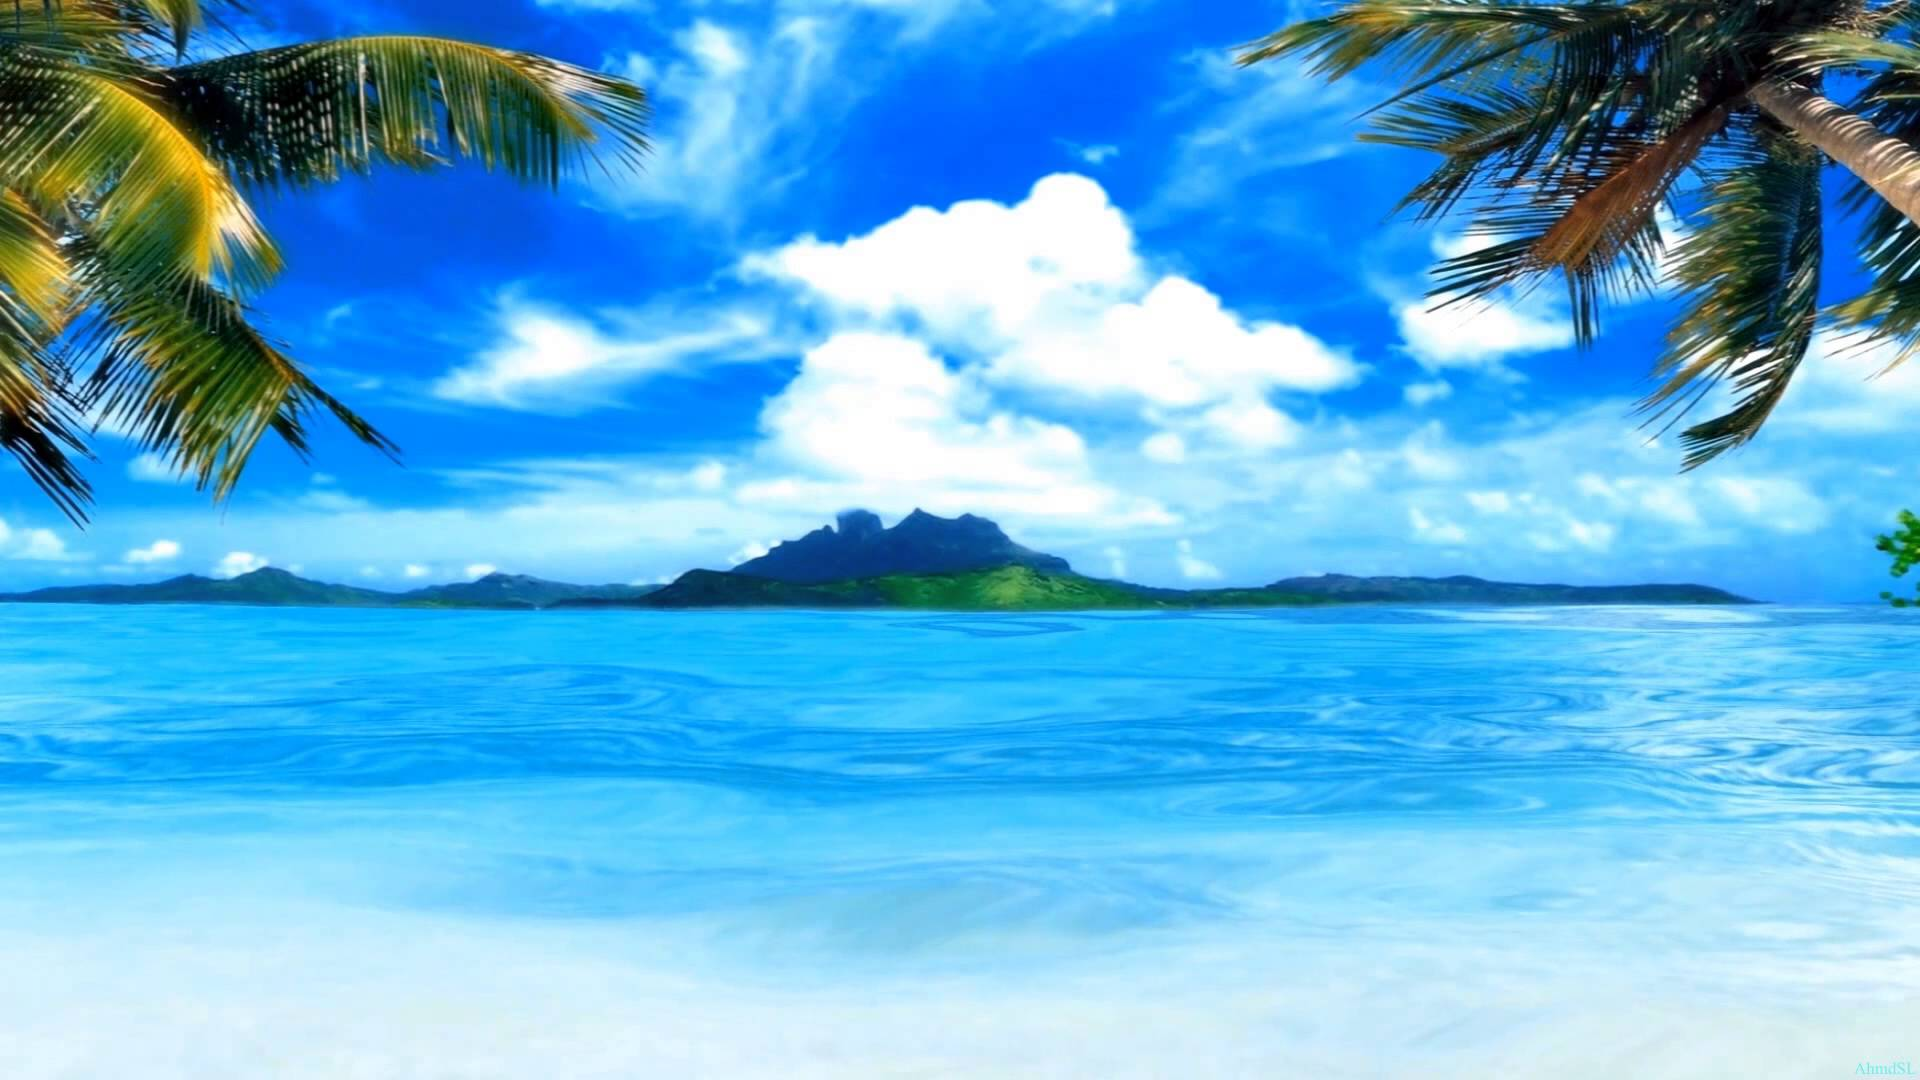 moving beach backgrounds for wallpaper - photo #5